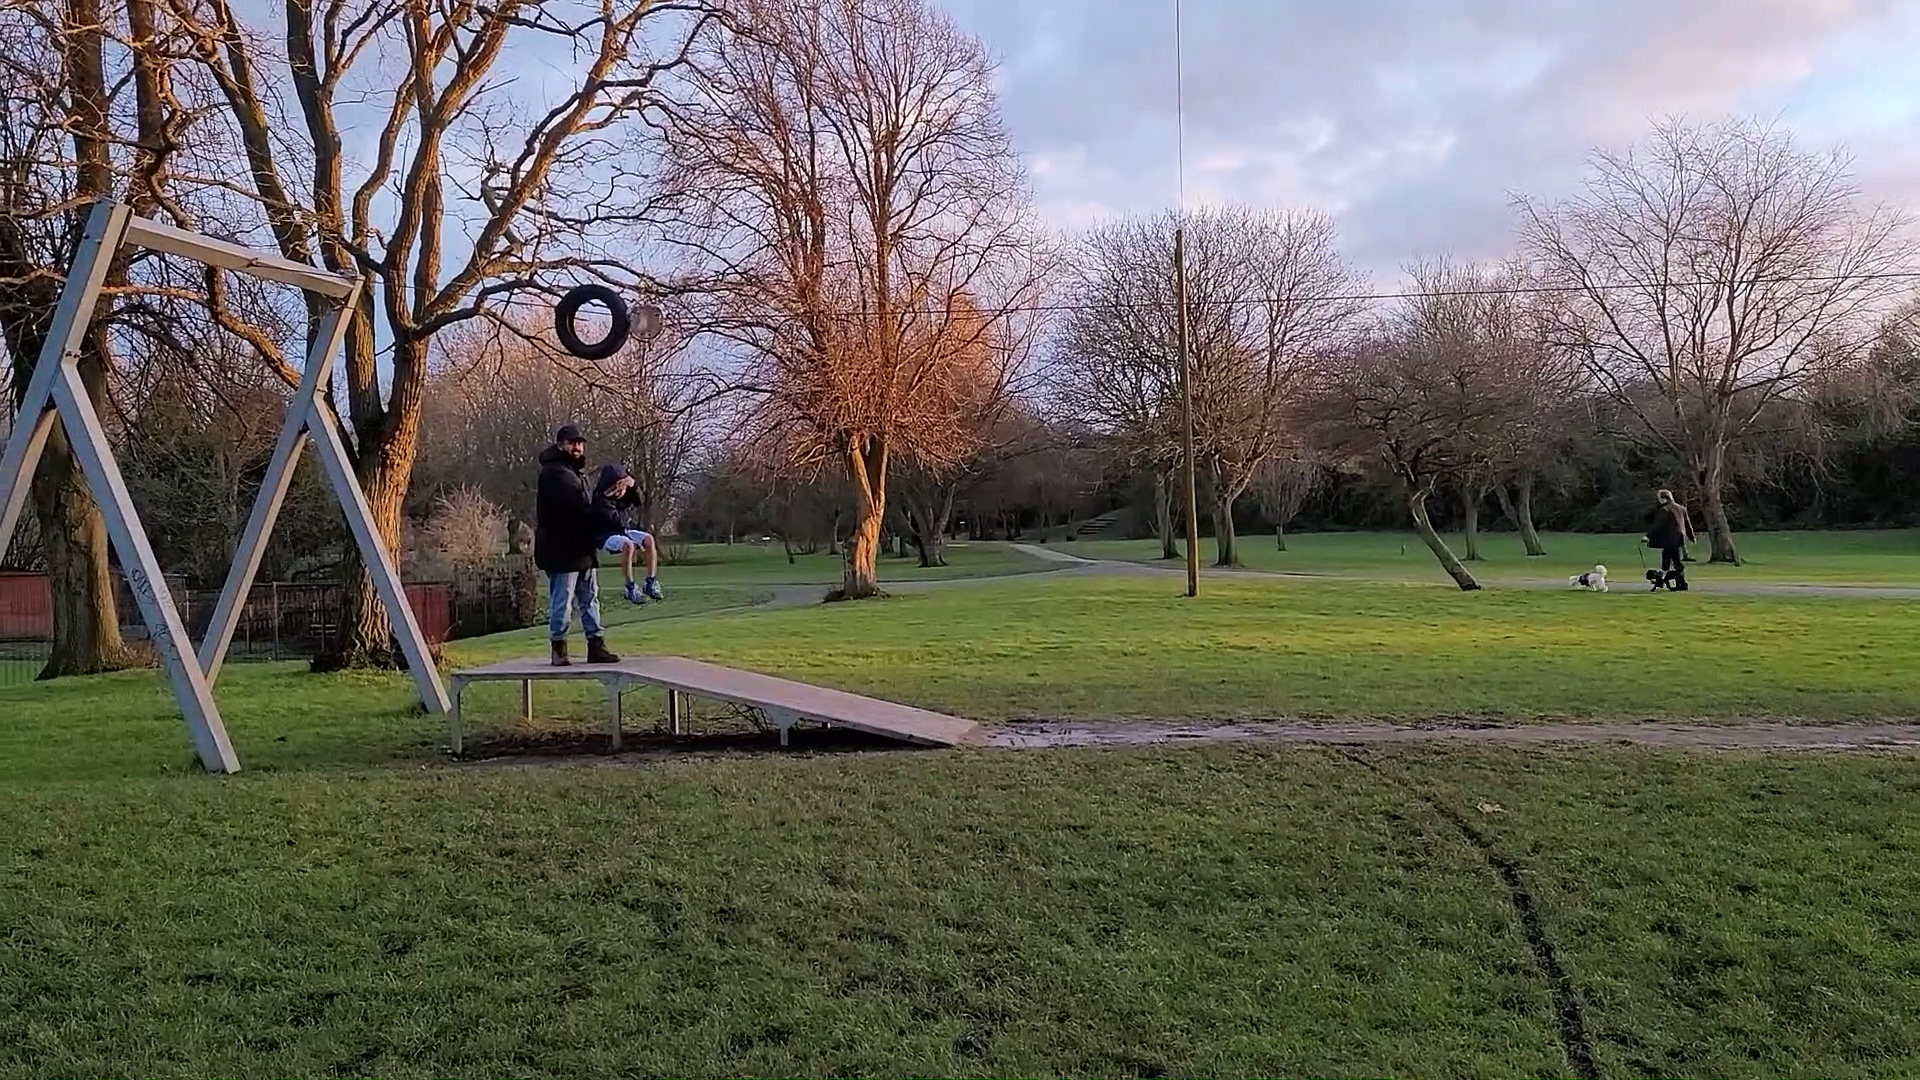 Family Afternoon Walk and Scooter Fun at Miners Welfare Park – Bedworth United Kingdom